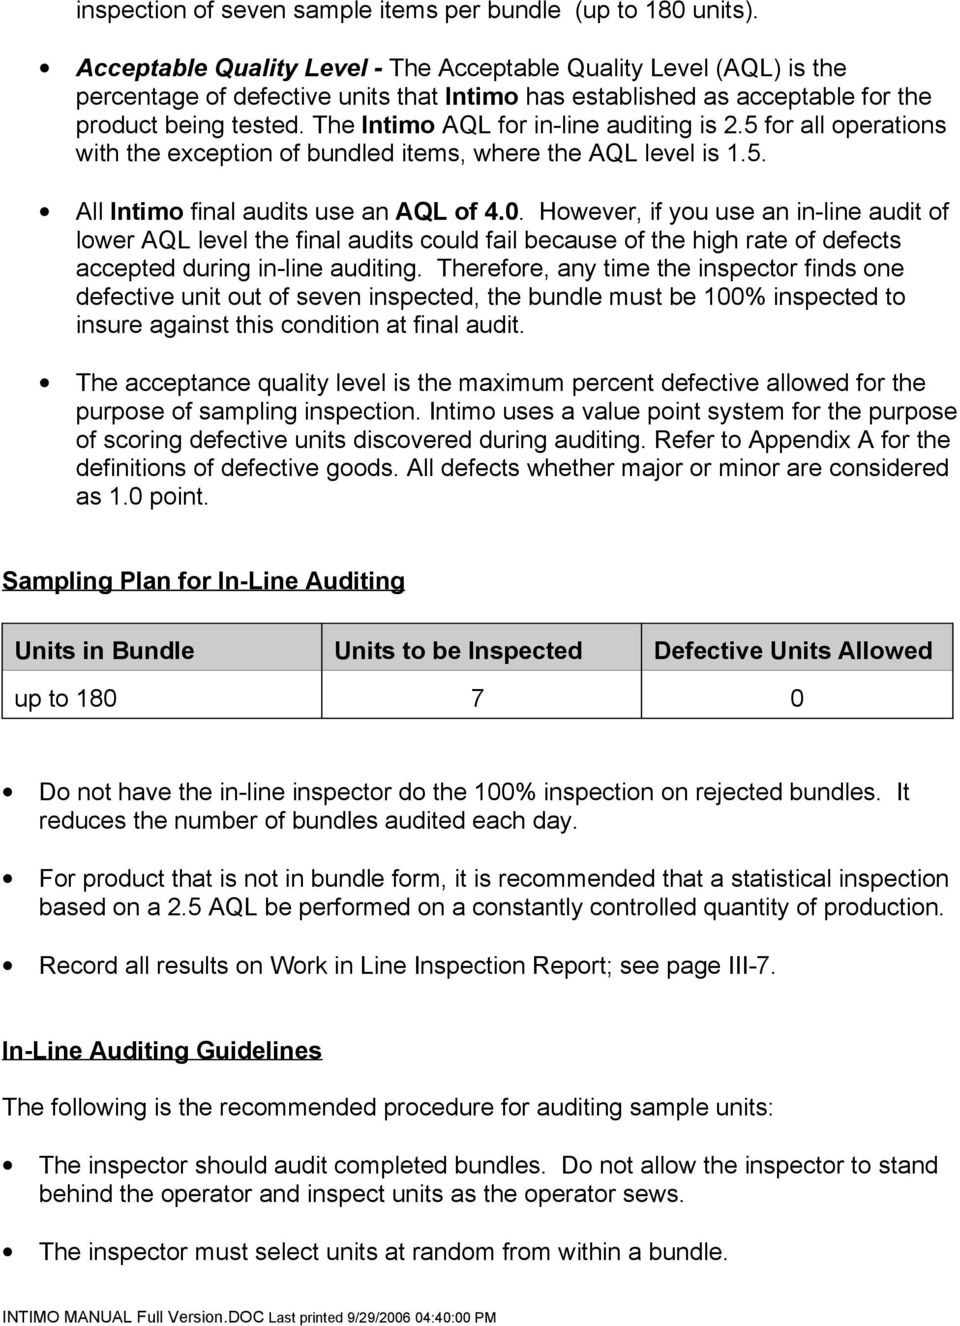 The Intimo AQL for in-line auditing is 2.5 for all operations with the exception of bundled items, where the AQL level is 1.5. All Intimo final audits use an AQL of 4.0.